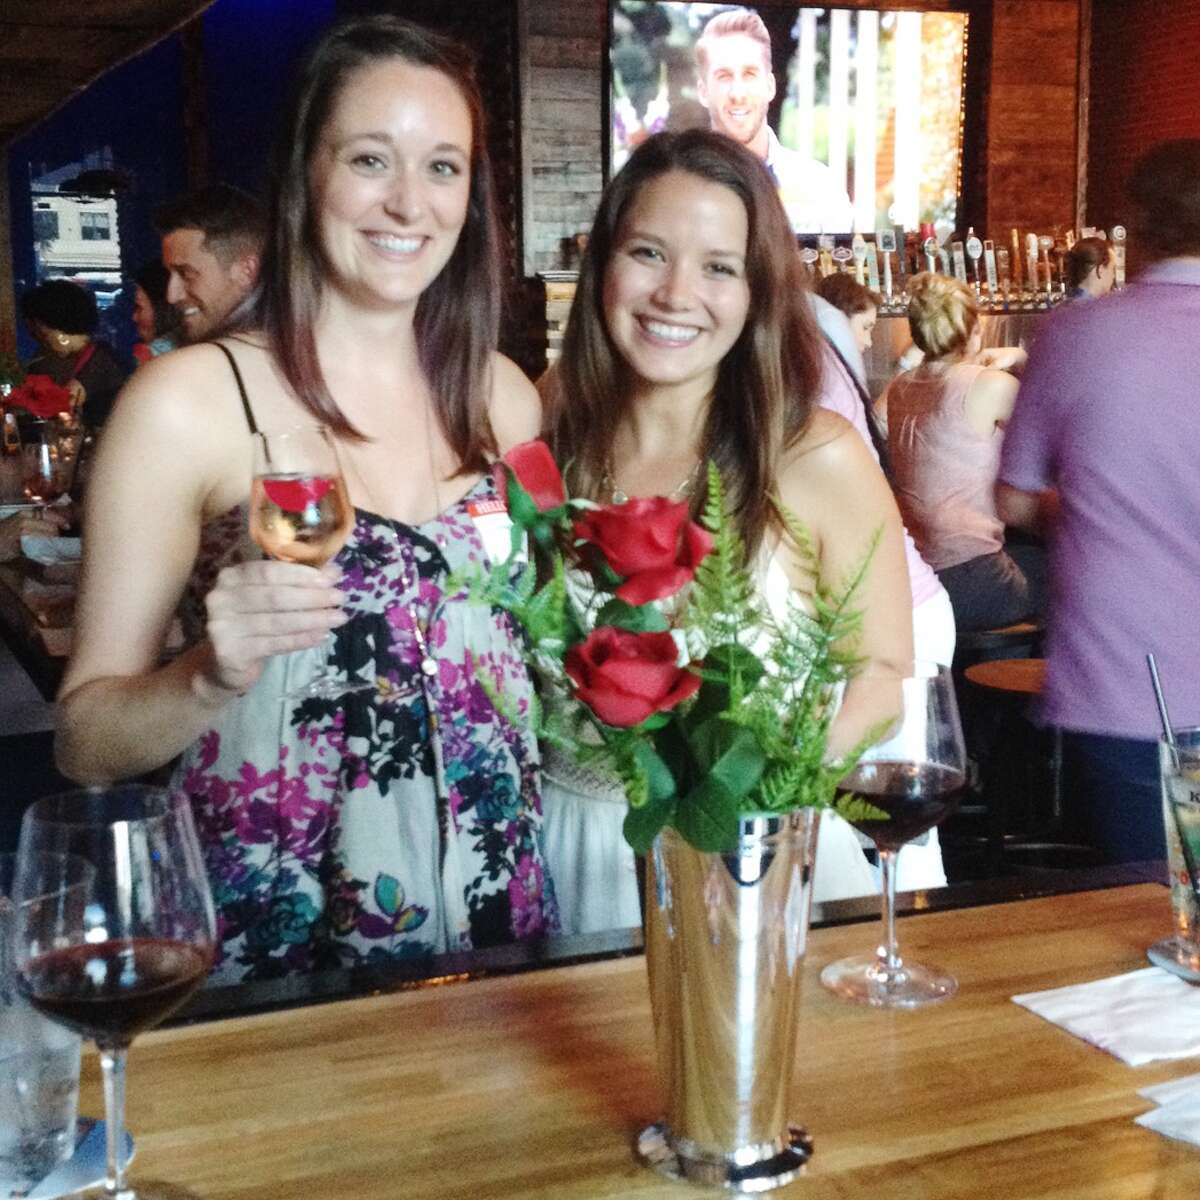 Holly Oller and Breanna Bueche at The Bachelorette's season finale screening party hosted by local contestant Cory Shivar at Barley & Bovine